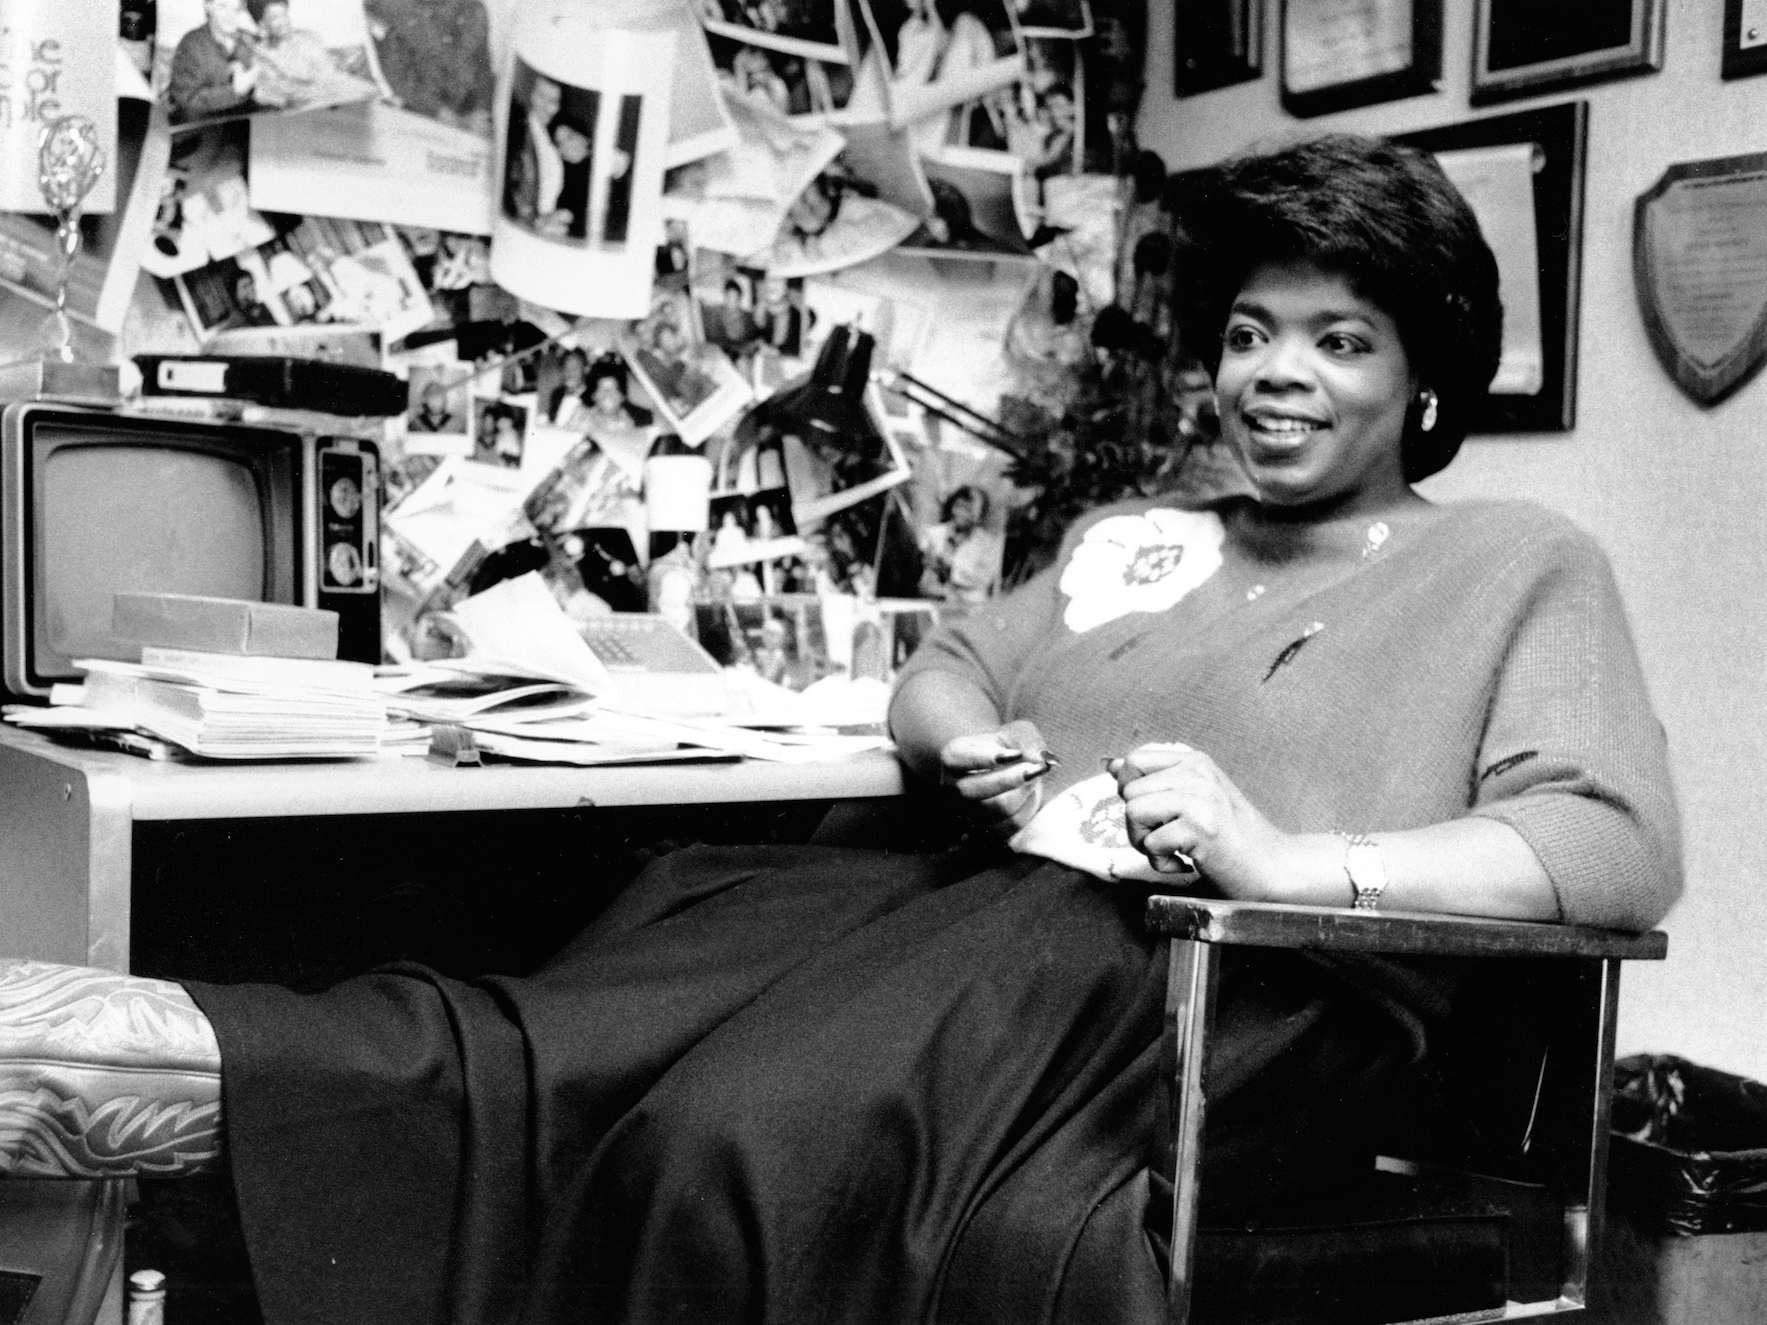 "Winfrey was instead placed on a local talk show, interviewing celebrities. ""I felt like this is what I'm supposed to do. All these years I'd been misplaced in news because I couldn't relate,"" Winfrey said on ""The Oprah Winfrey Show."" ""The moment I did that talk-show I felt like, 'Oh, I can be myself' and … that was the beginning of fulfilling the calling."""